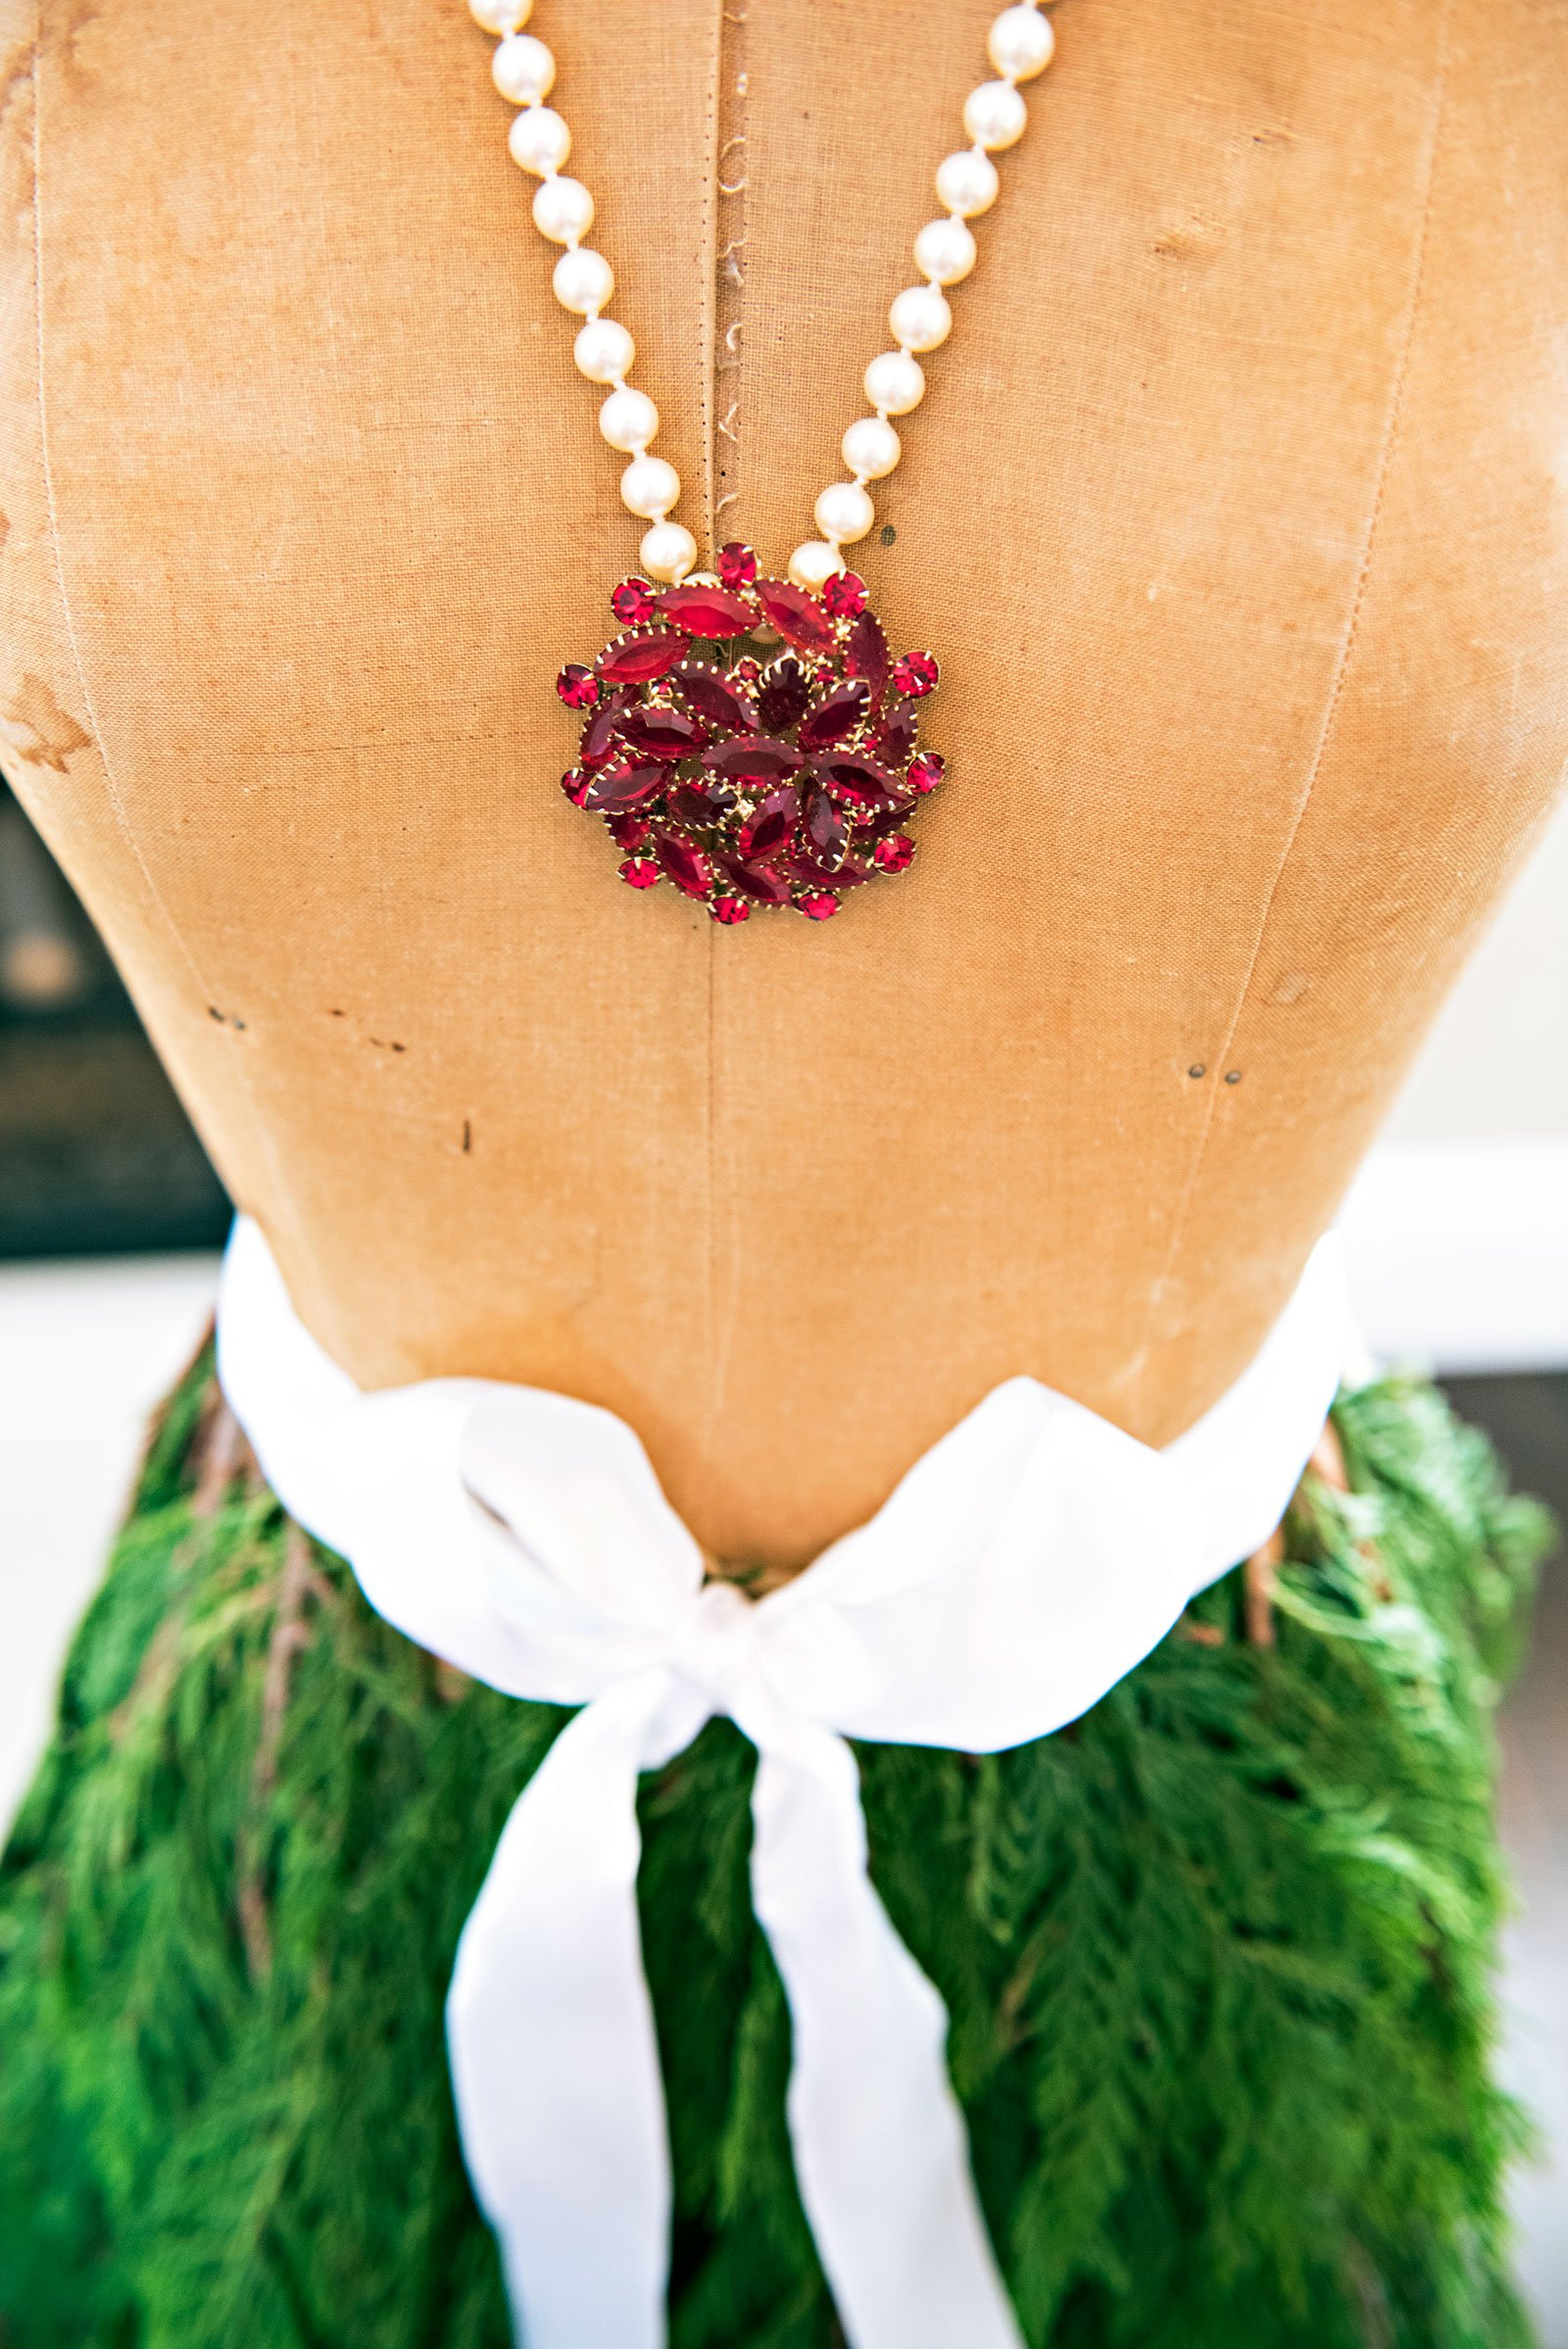 Vintage dress form with red broach and pearl necklace and cedar skirt tied with a white bow